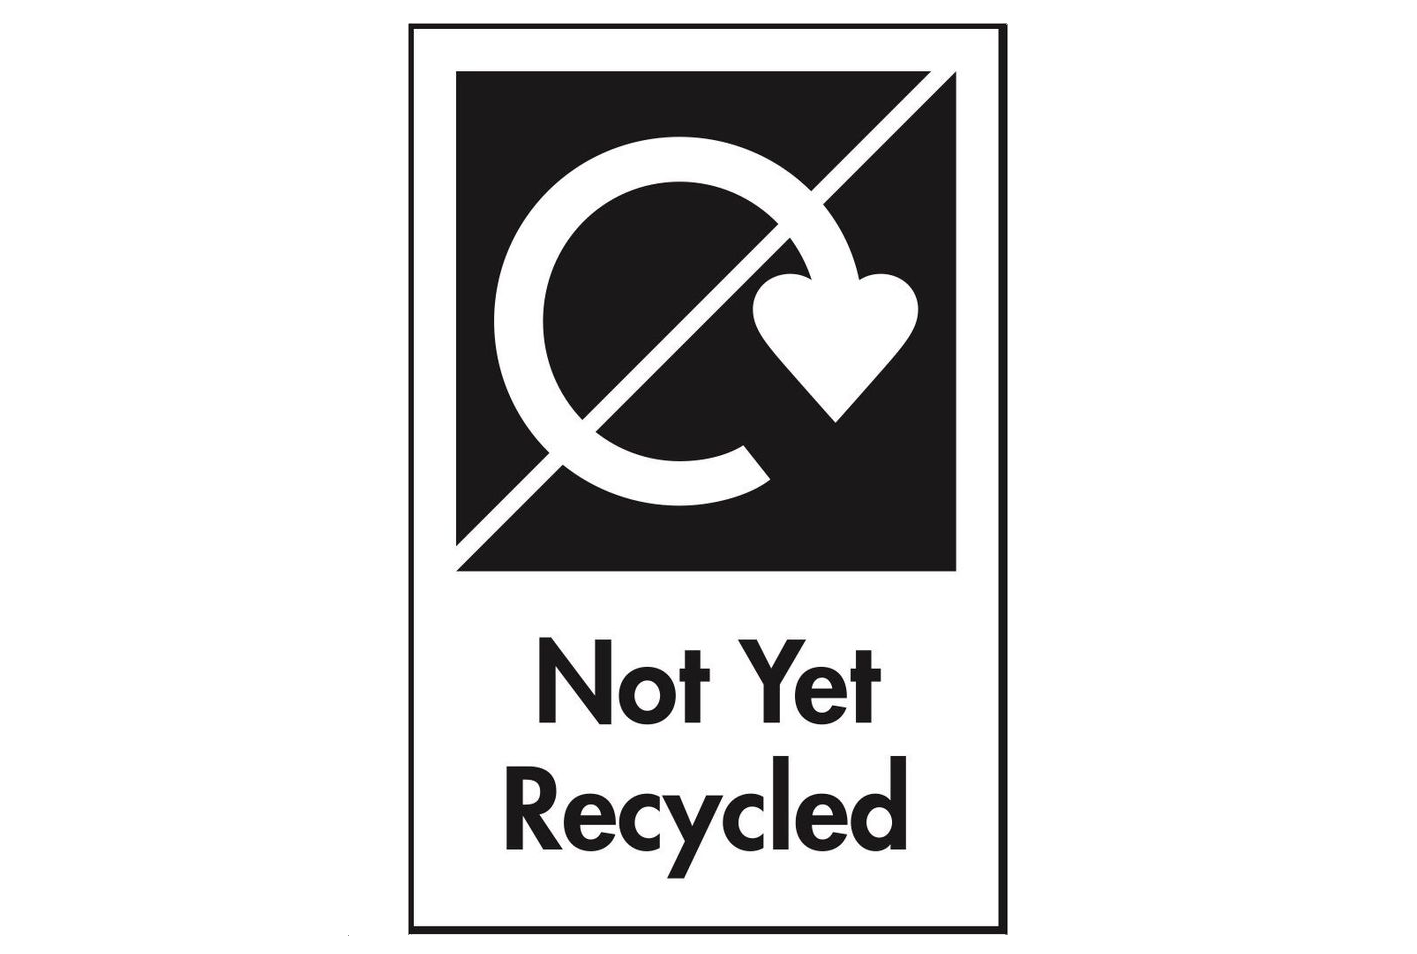 not yet recycled